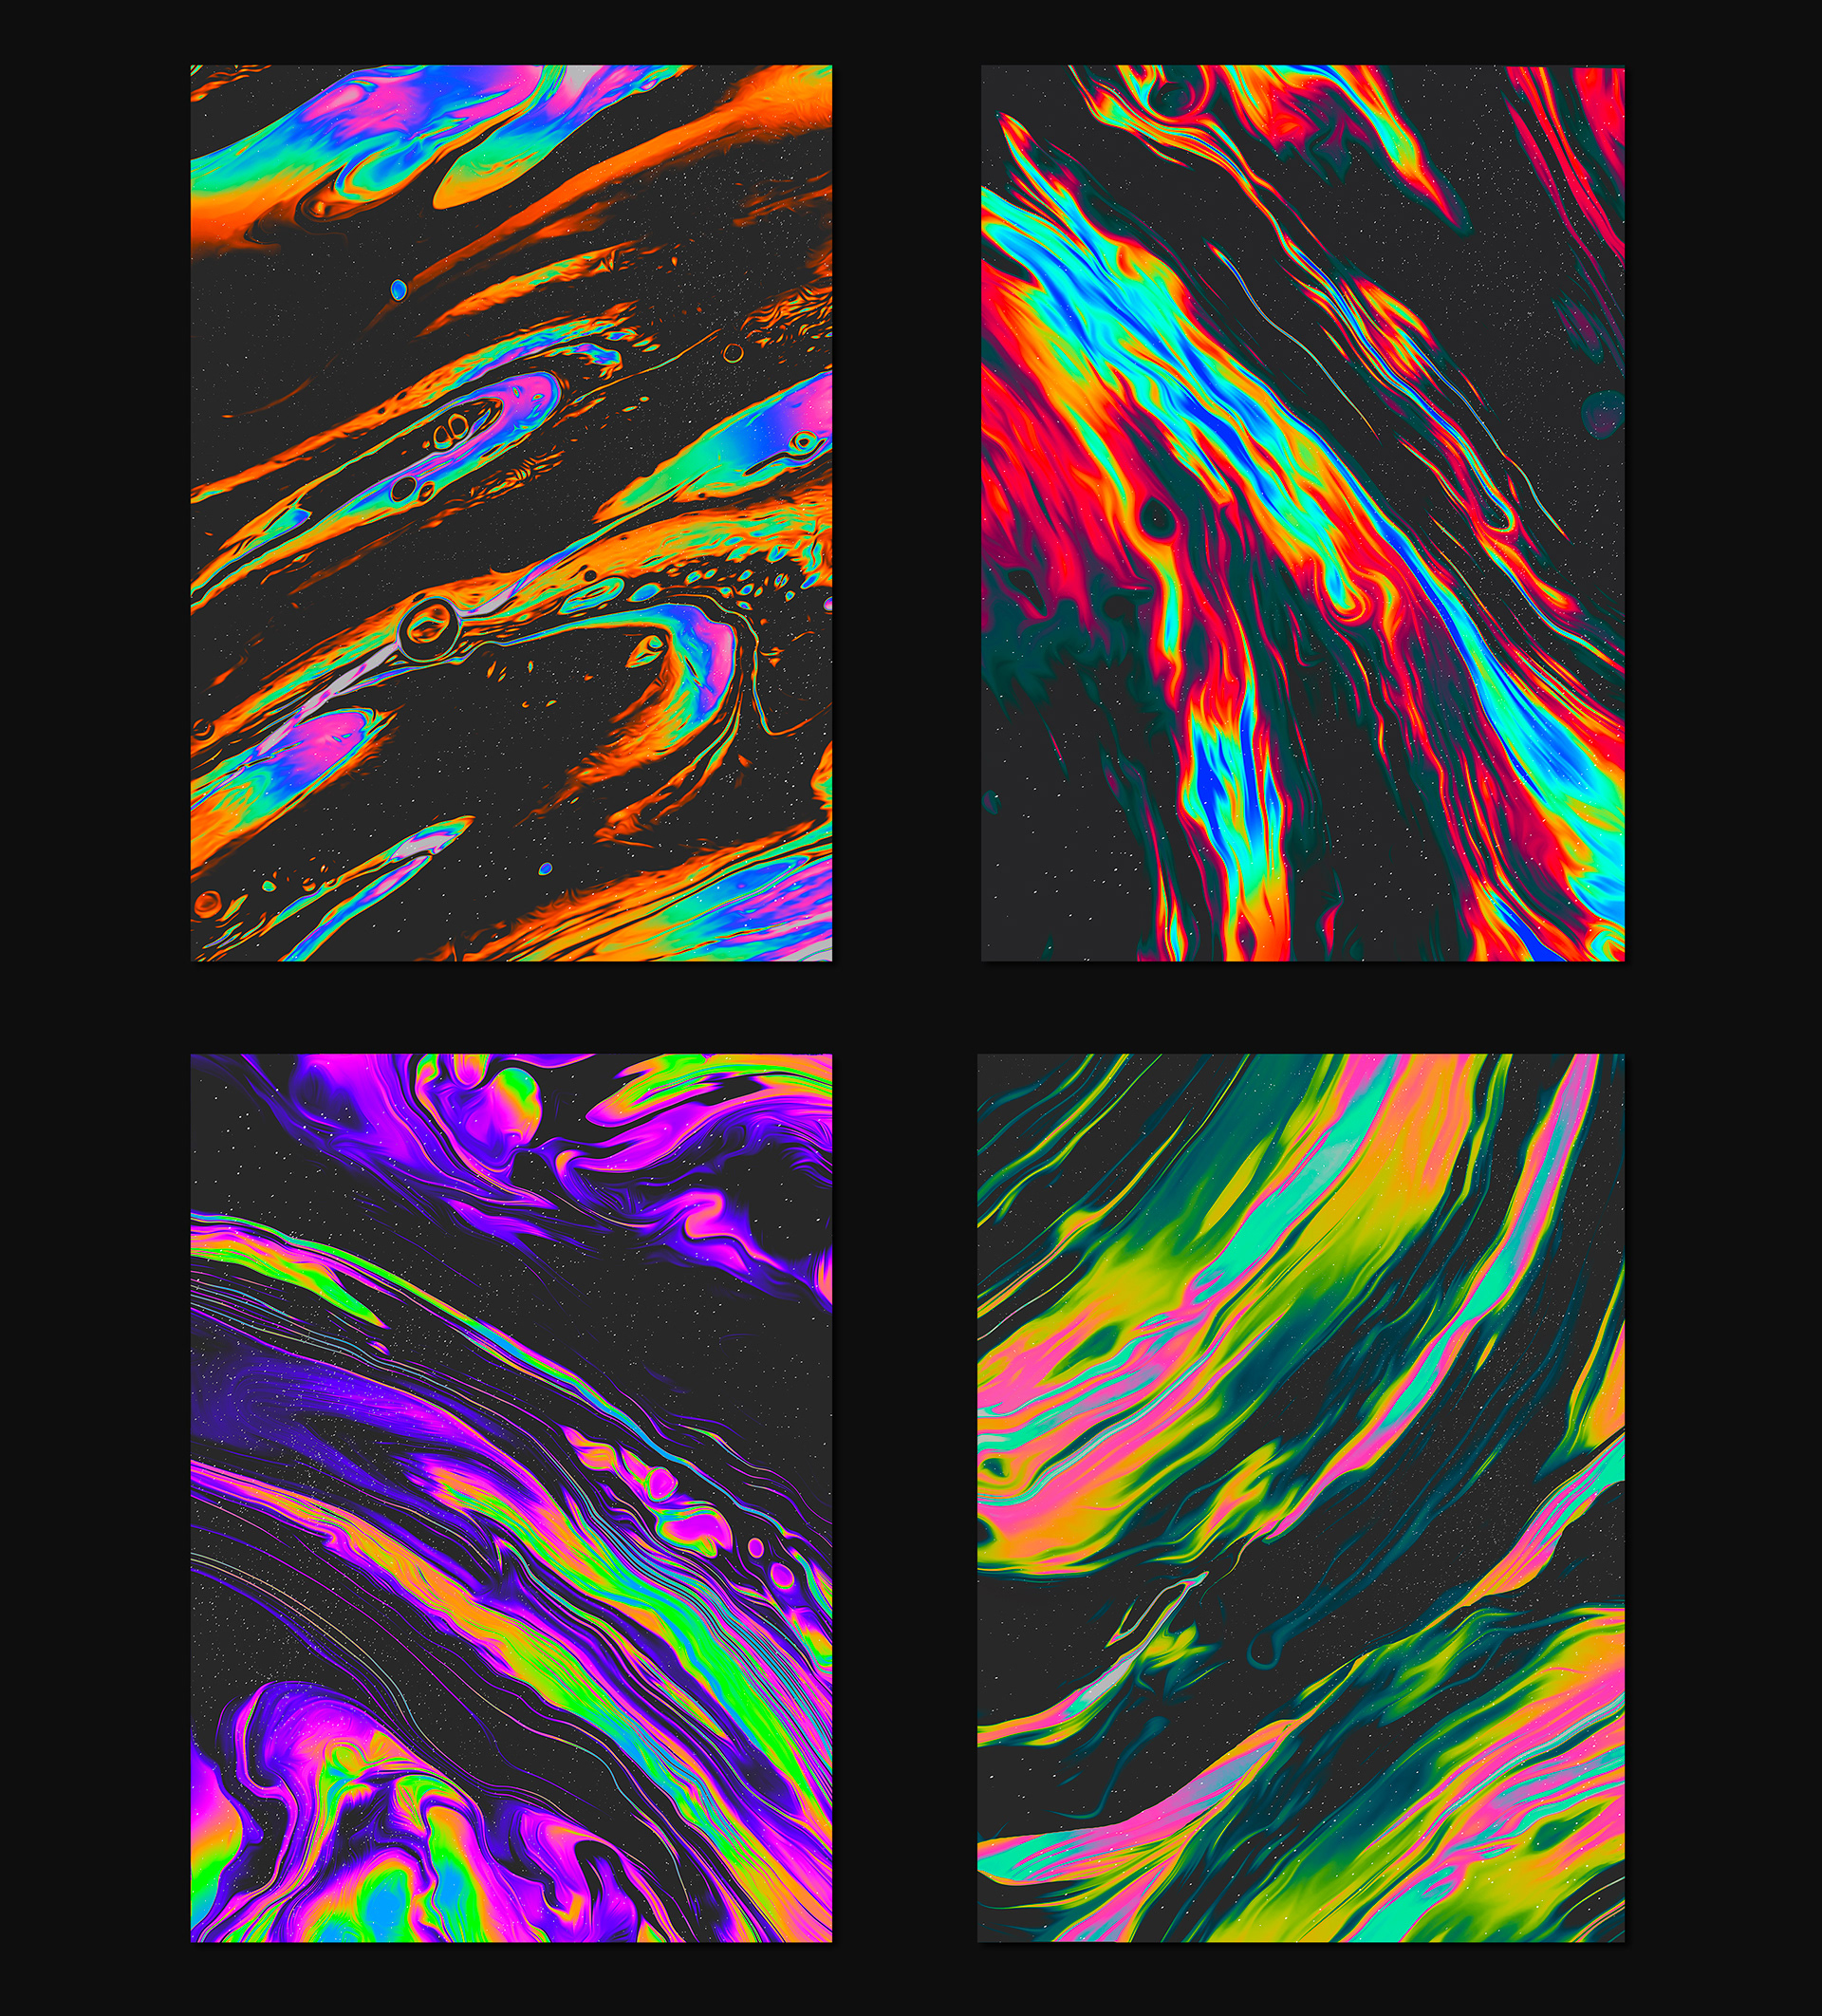 Abstract & Stylish Digital Art by Malavida